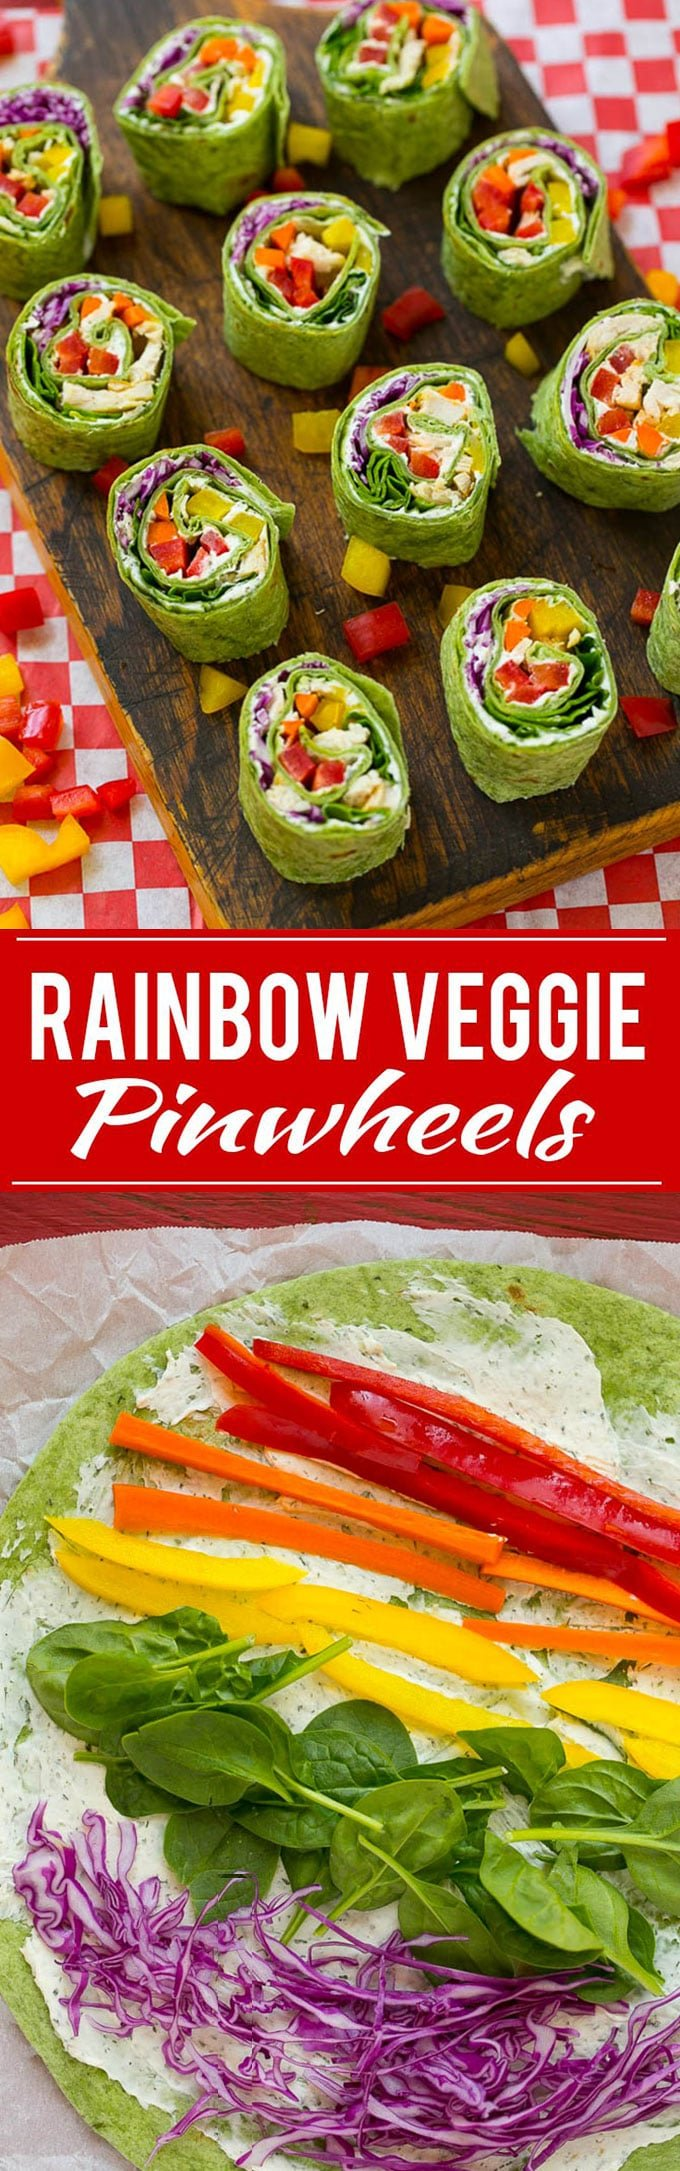 Rainbow Veggie Pinwheels Recipe | Veggie Pinwheels | Kids Lunch Recipe | Pinwheel Sandwich Recipe